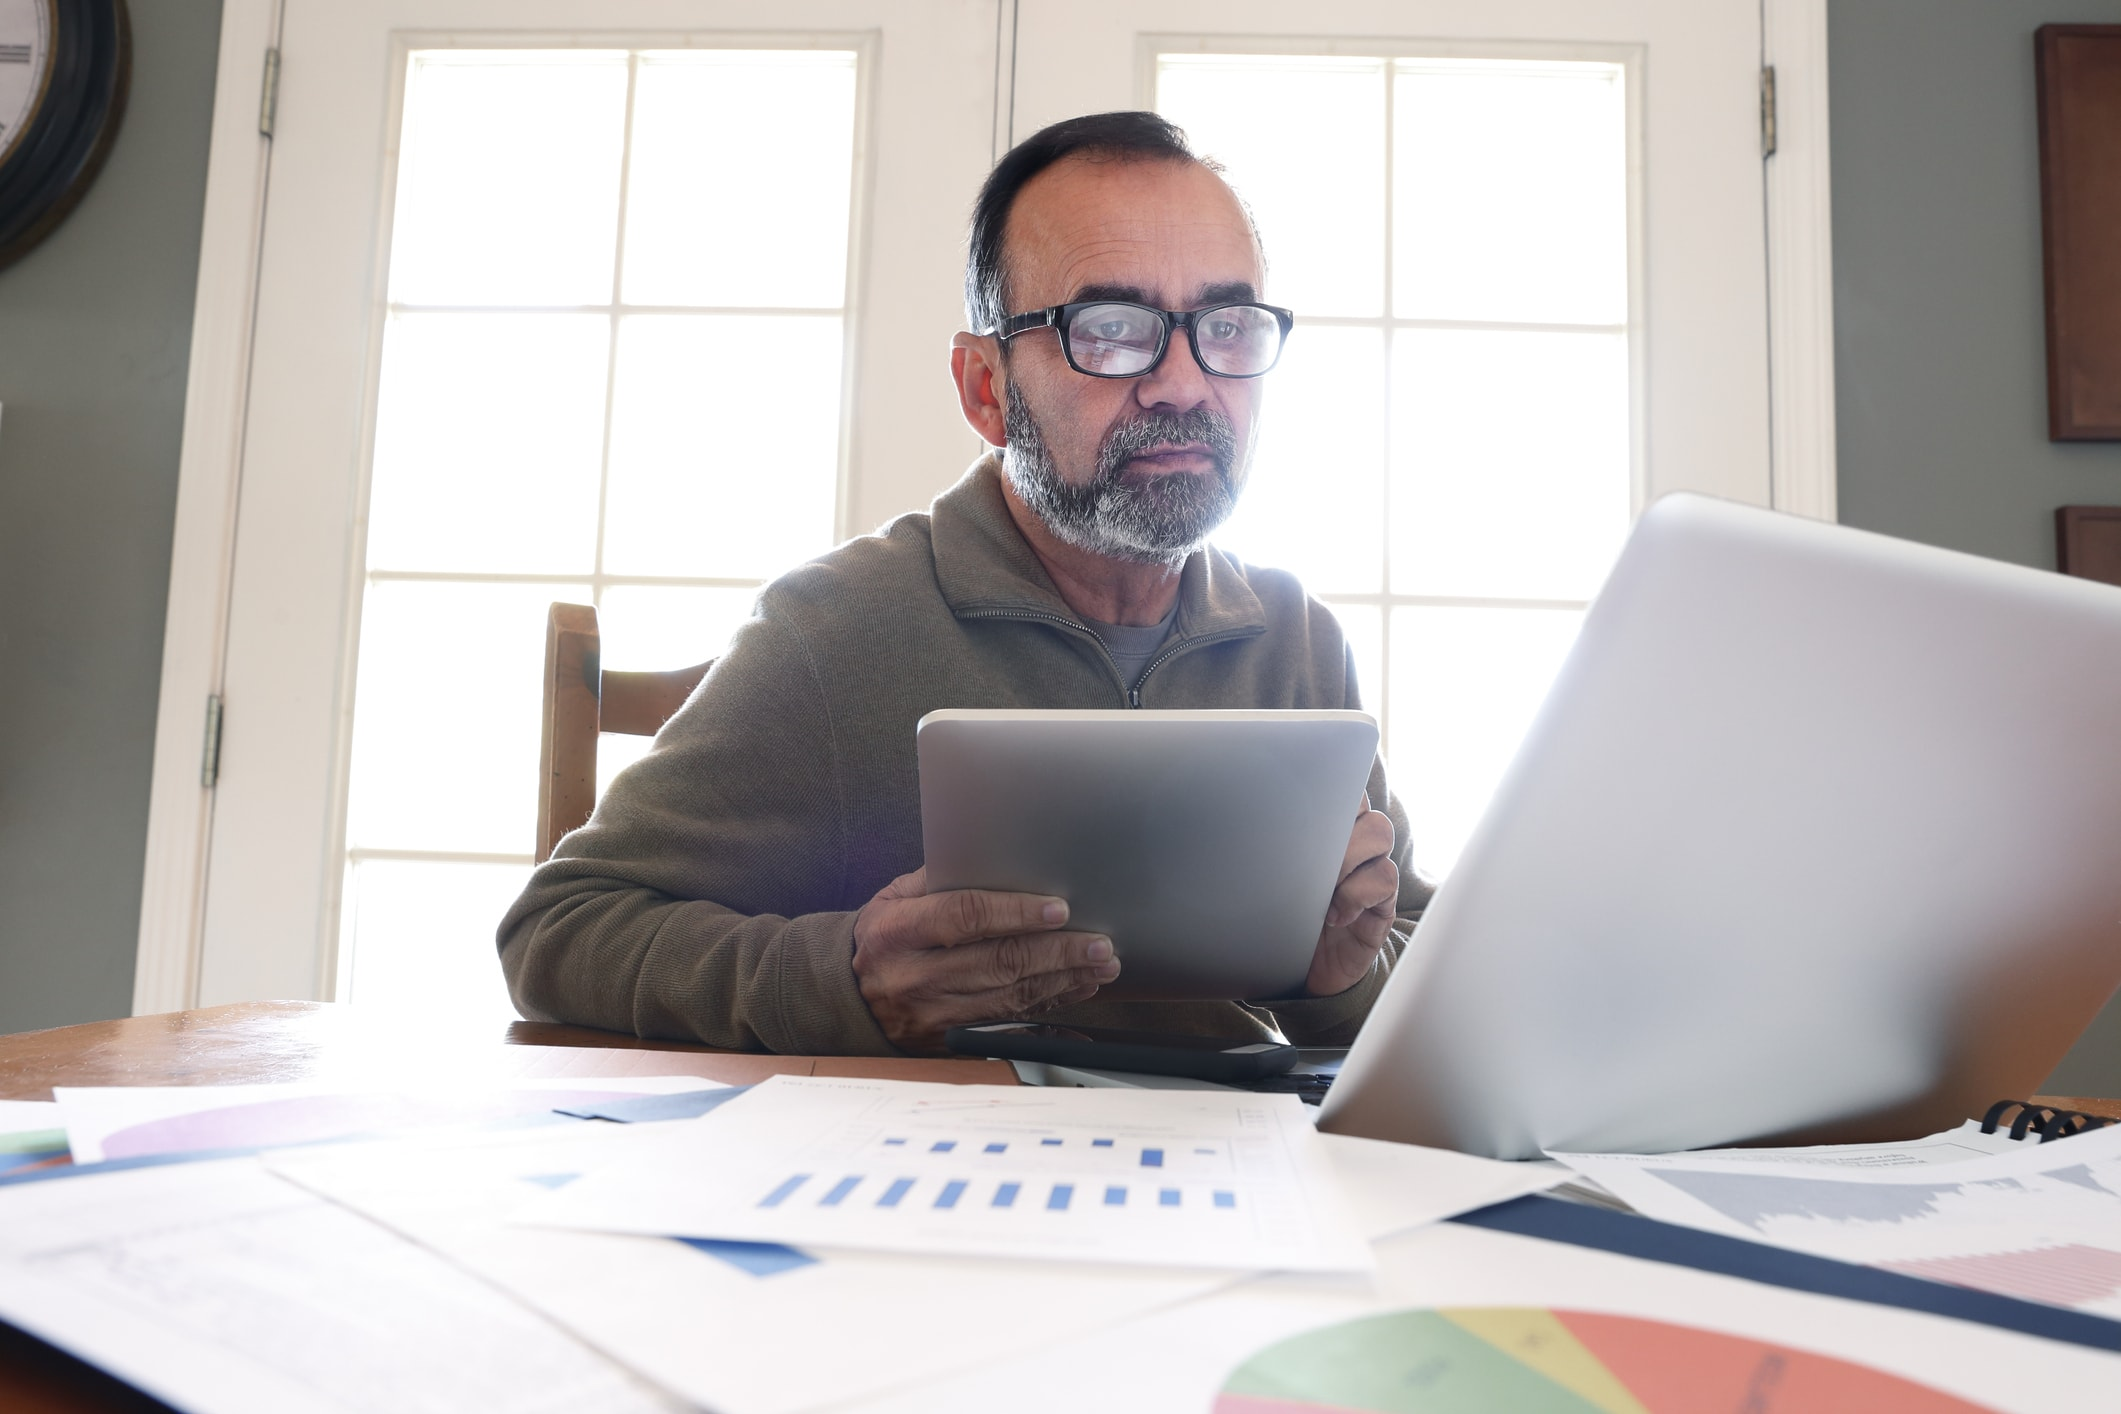 Man working from home on a computer